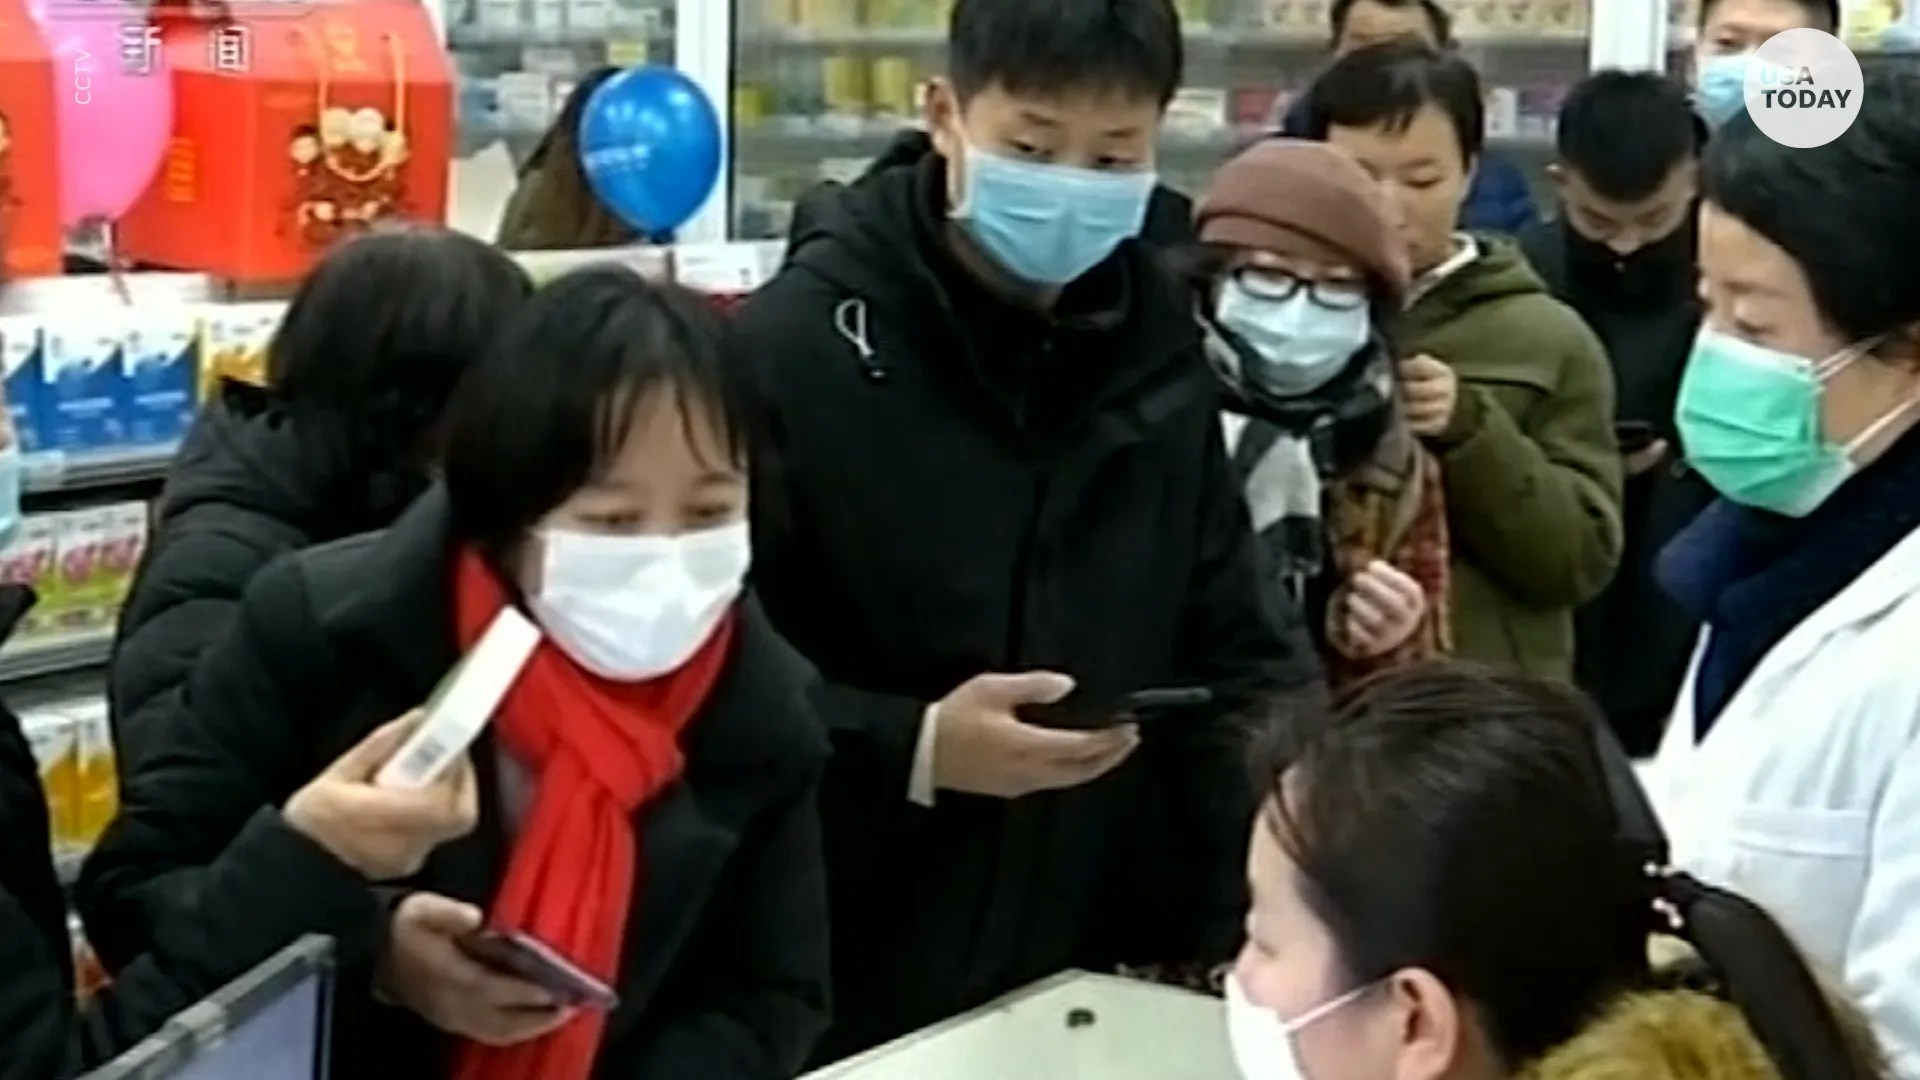 NY tests four people for coronavirus as China targets outbreak